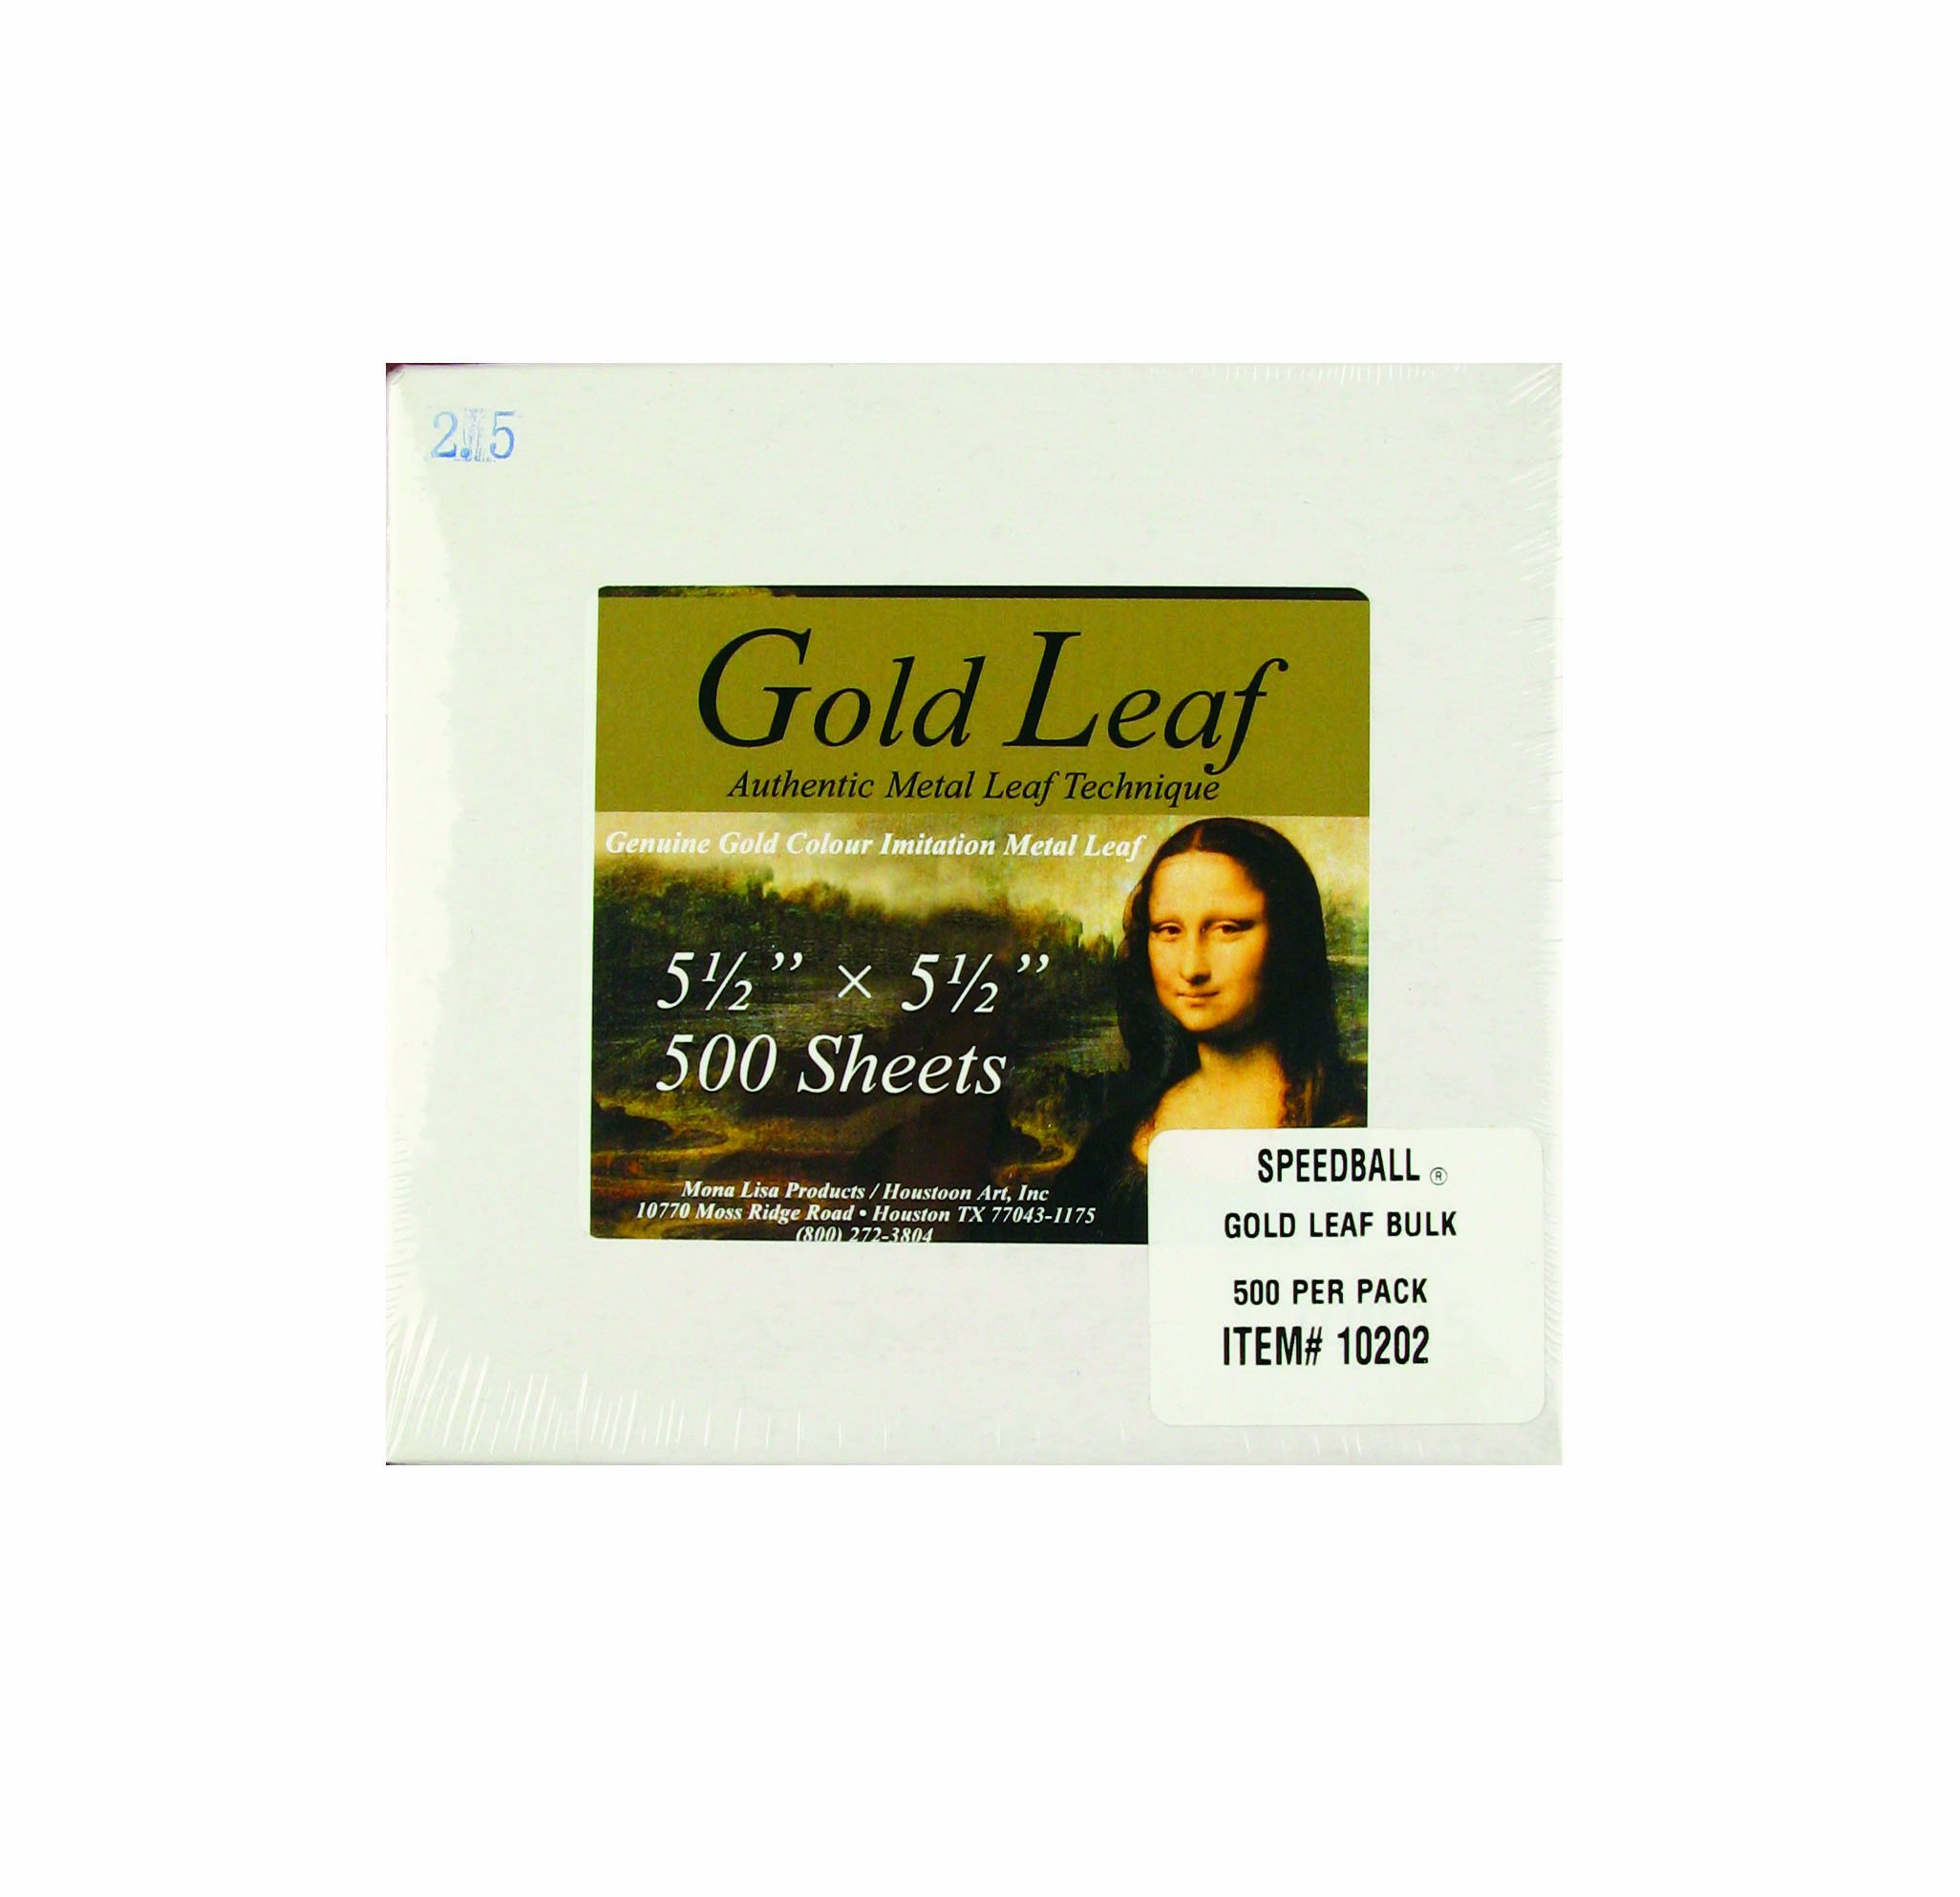 Speedball Mona Lisa Composition Gold Leaf, 500 Sheet Pack by Speedball